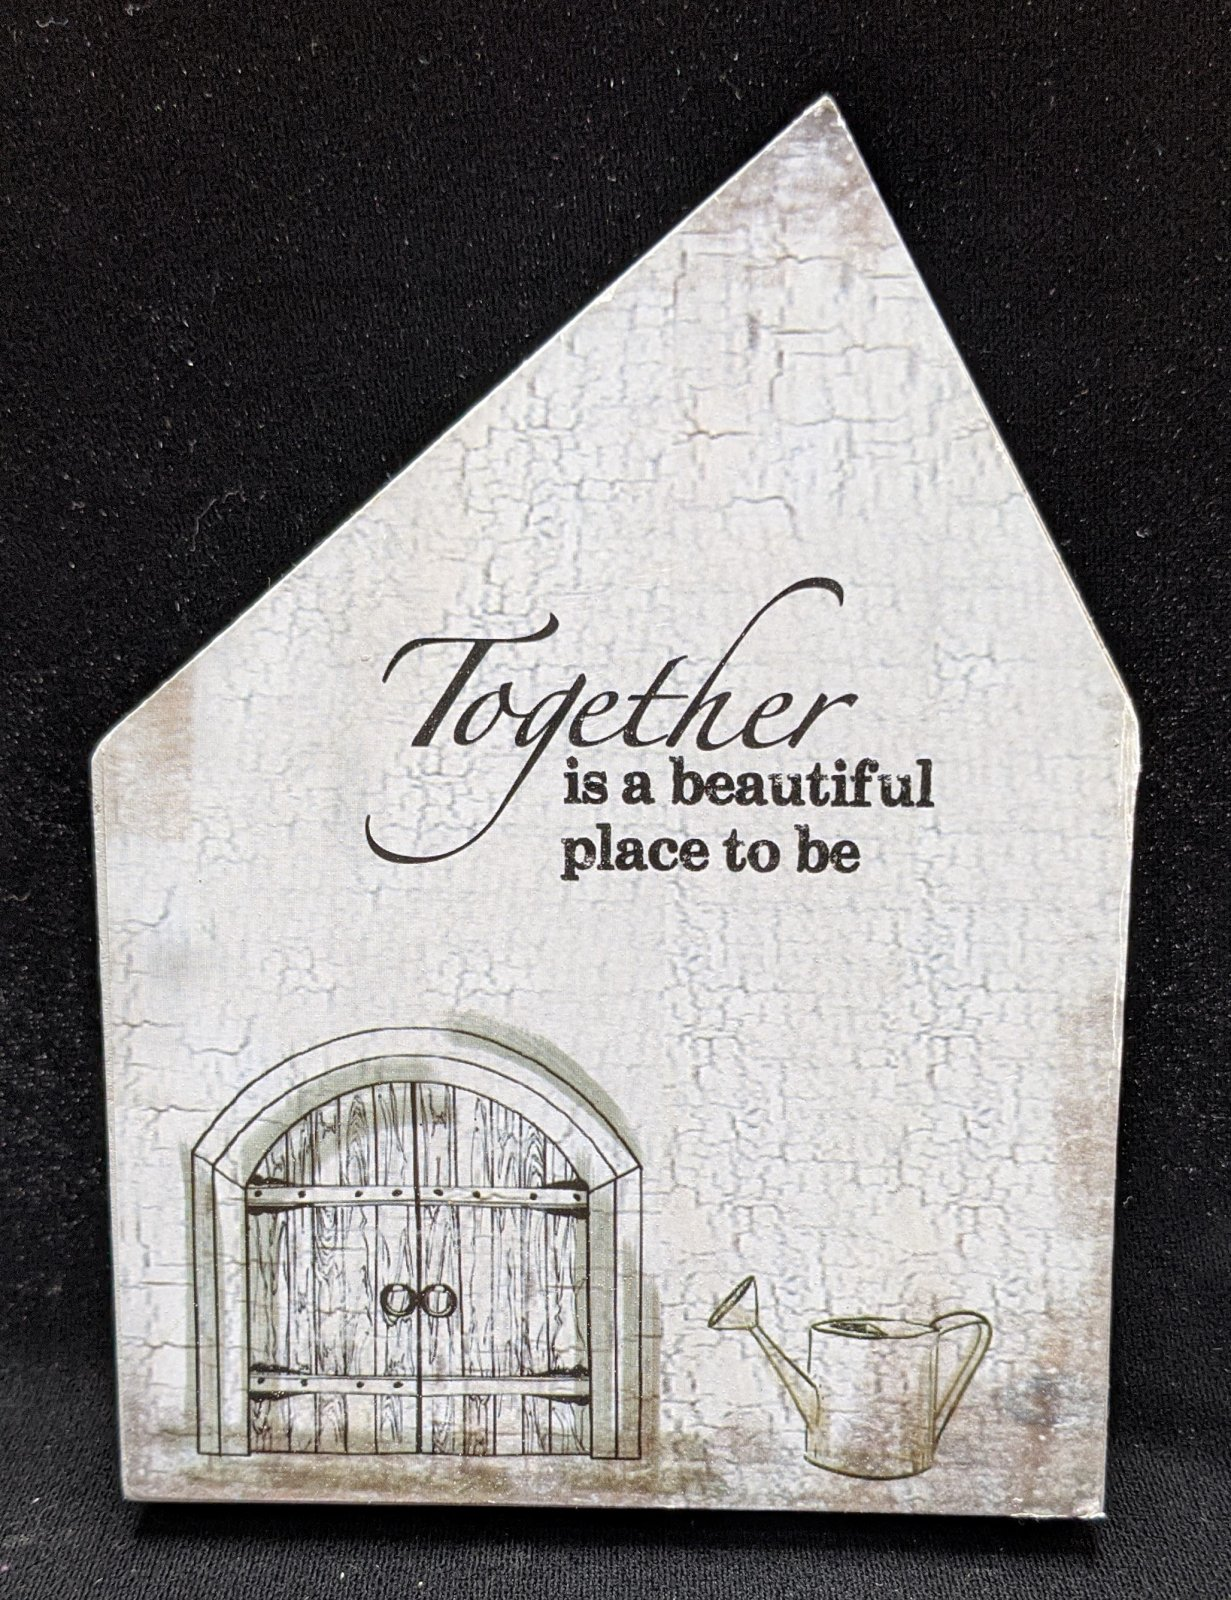 Together is a beautiful place to be wooden sign